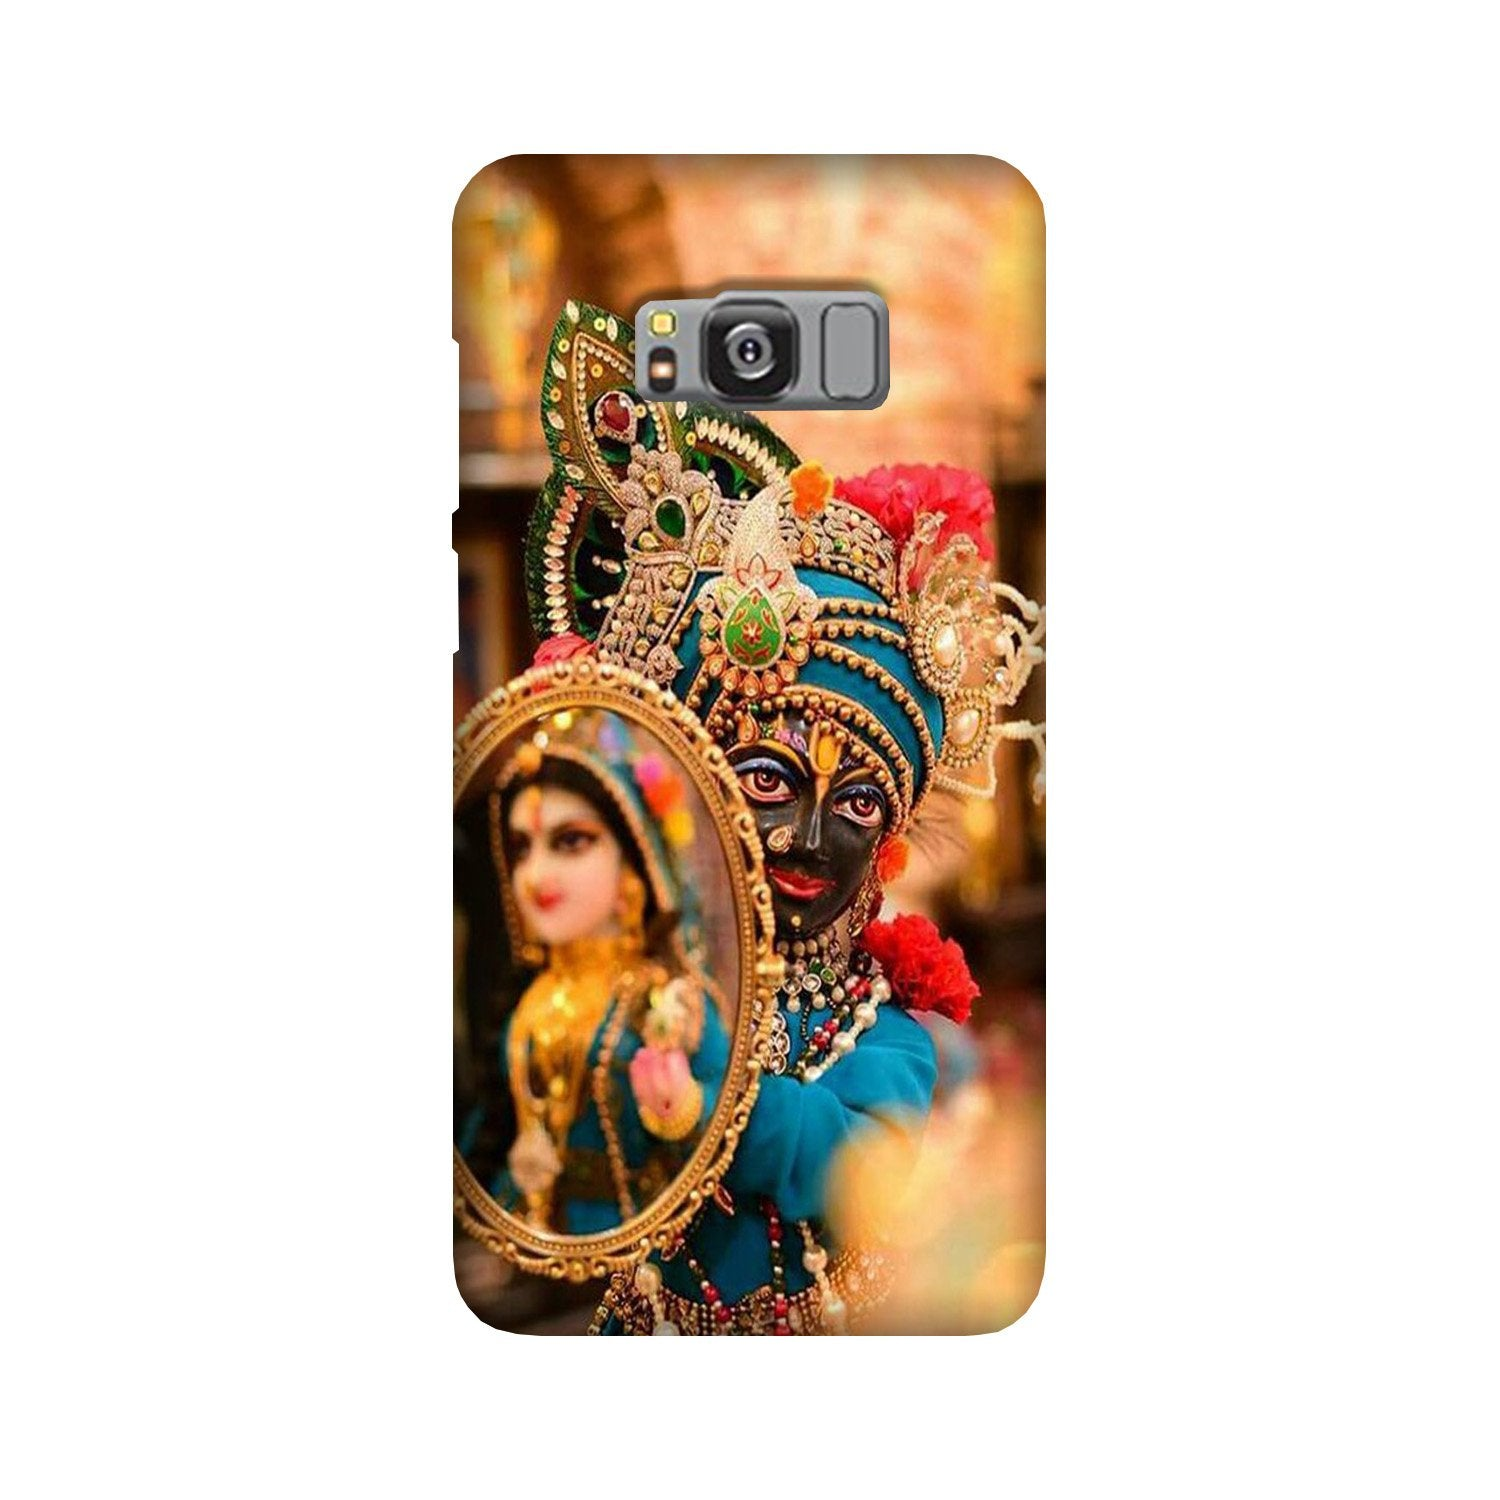 Lord Krishna5 Case for Galaxy S8 Plus